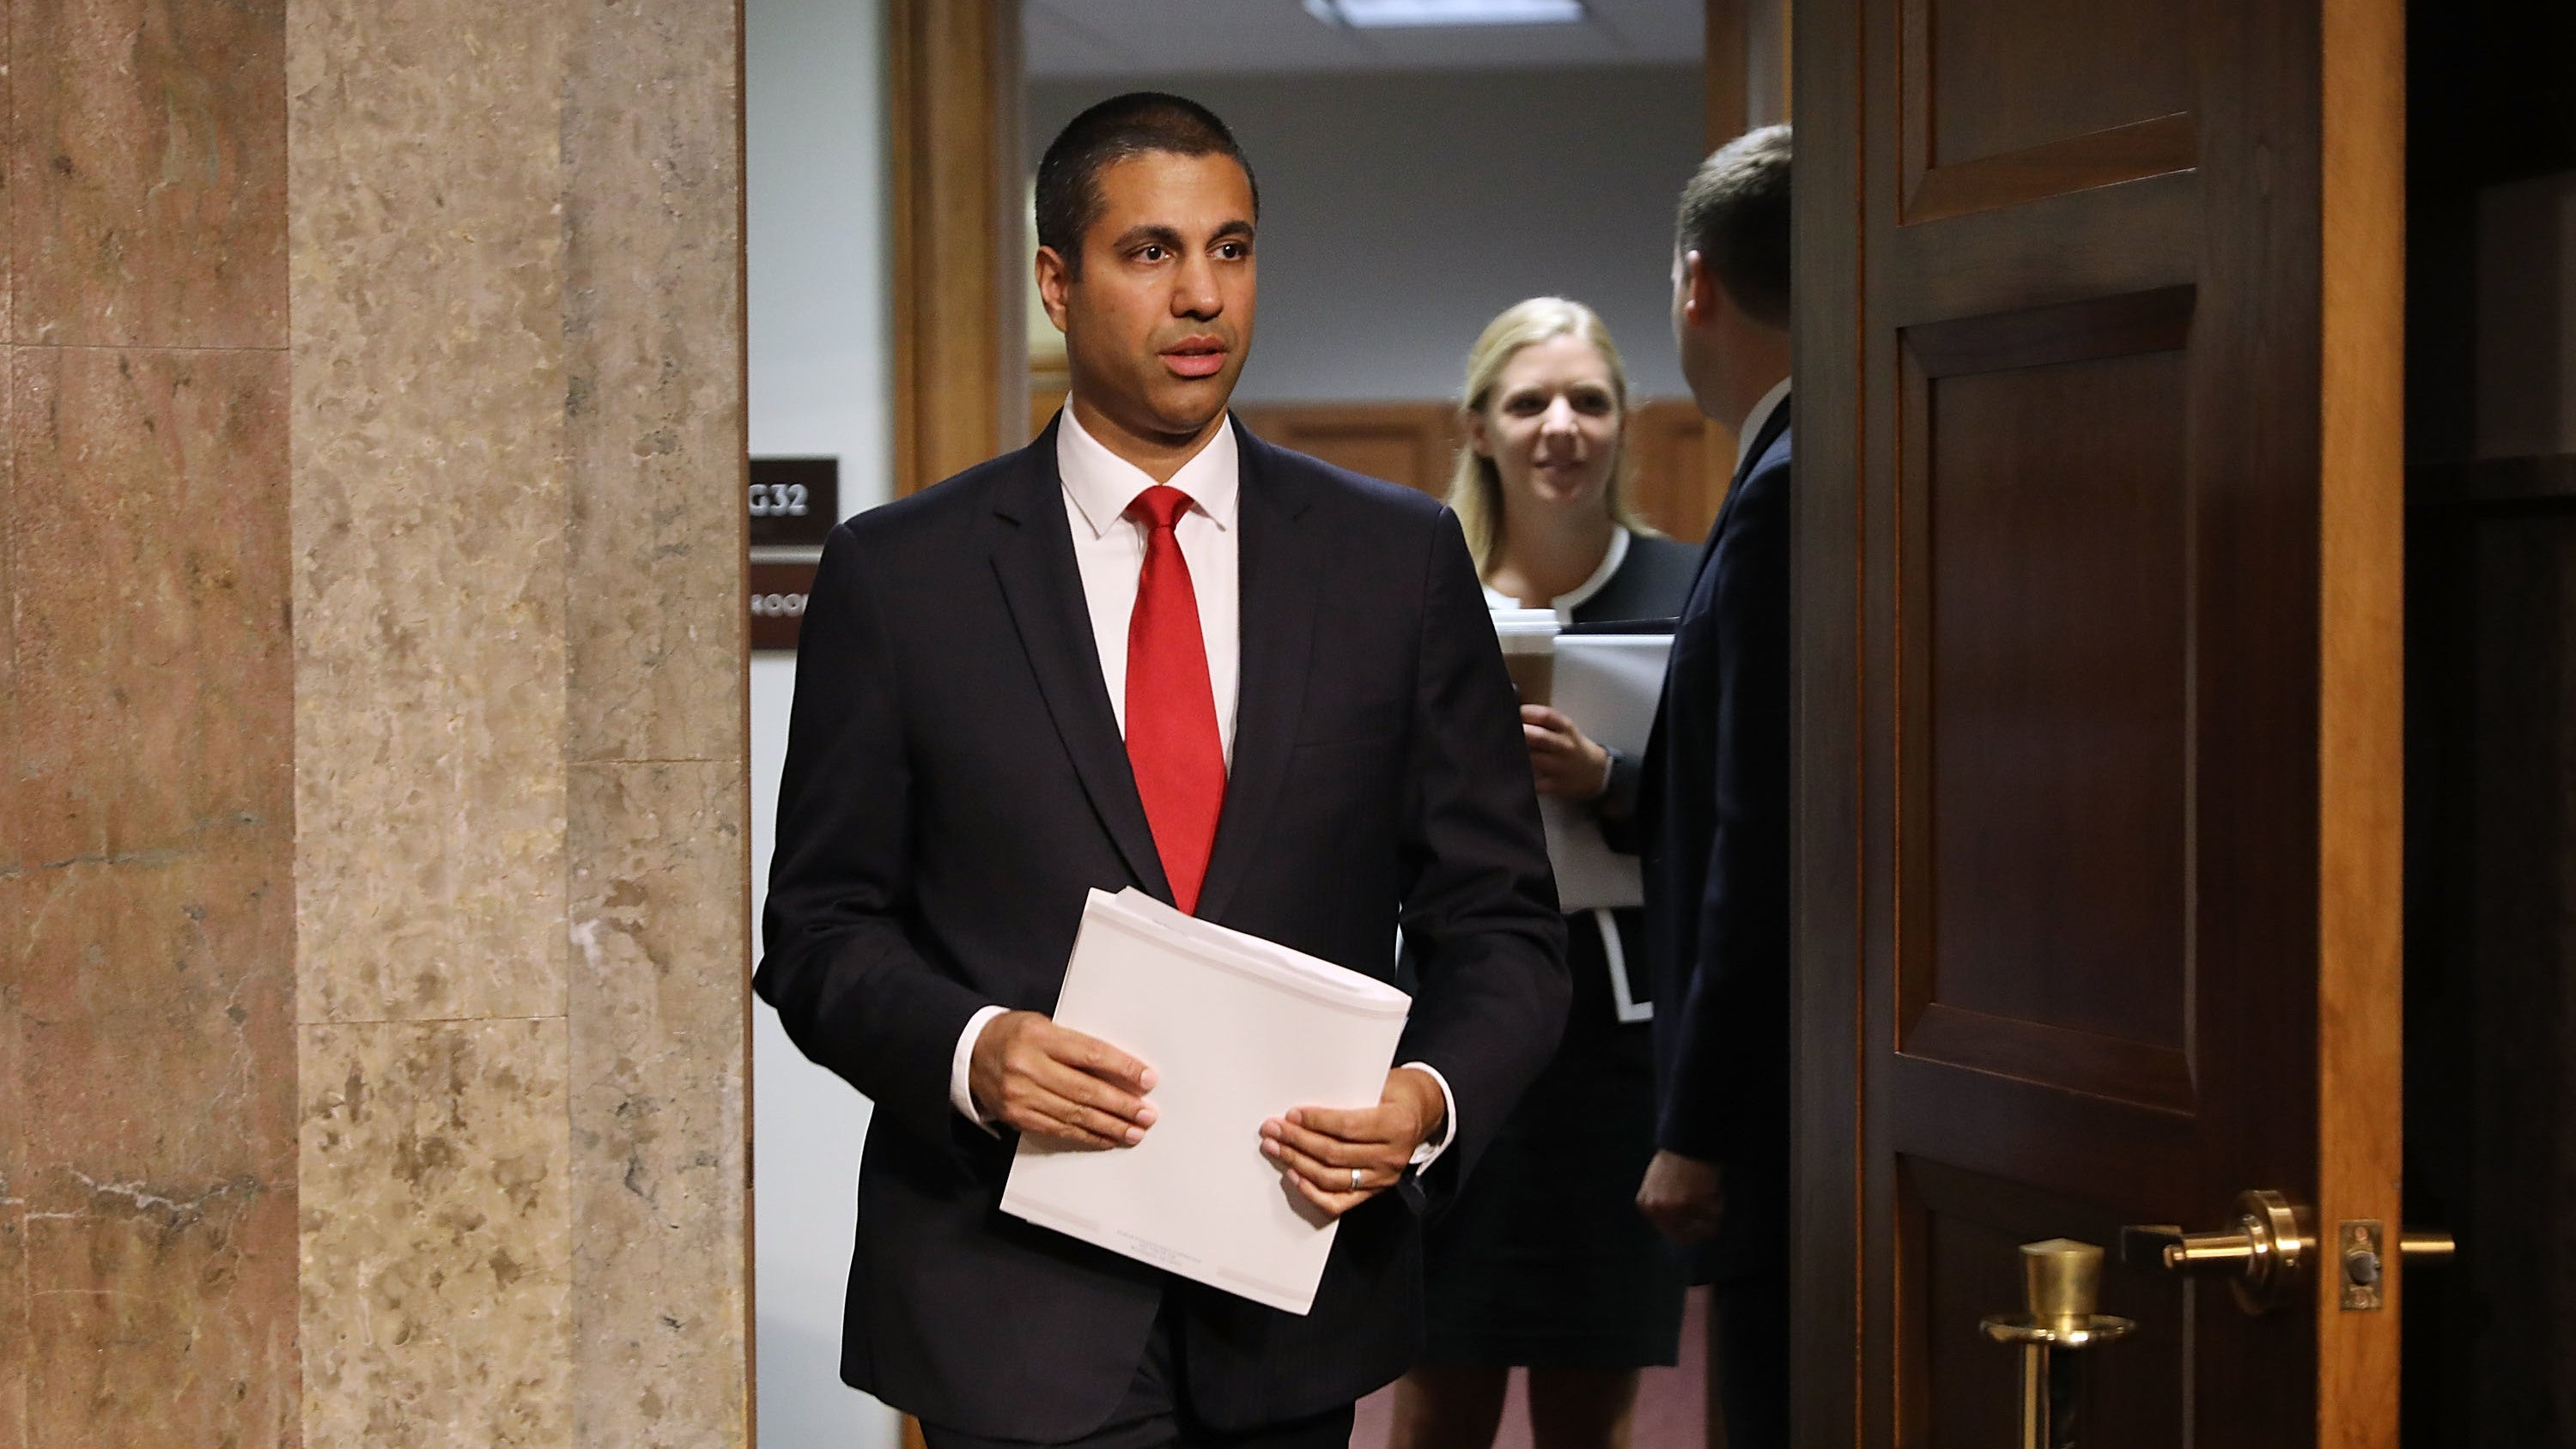 Ajit Pai: Repealing Net Neutrality Returns FCC to 'Rational' Approach Over Internet